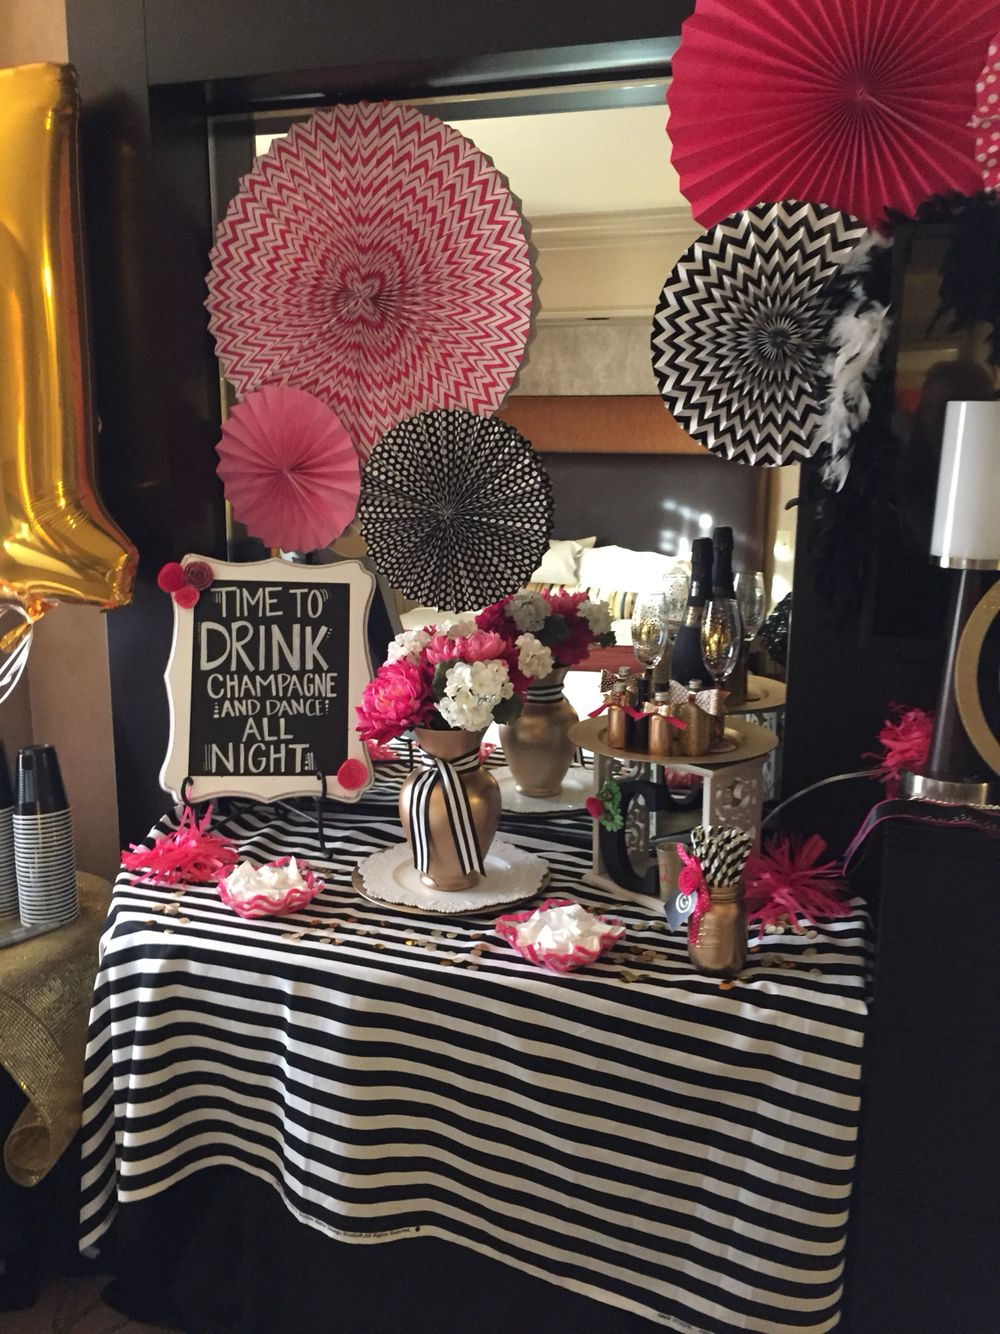 Kate Spade Inspired 21st Birthday Decorations In Vegas Hotel Room